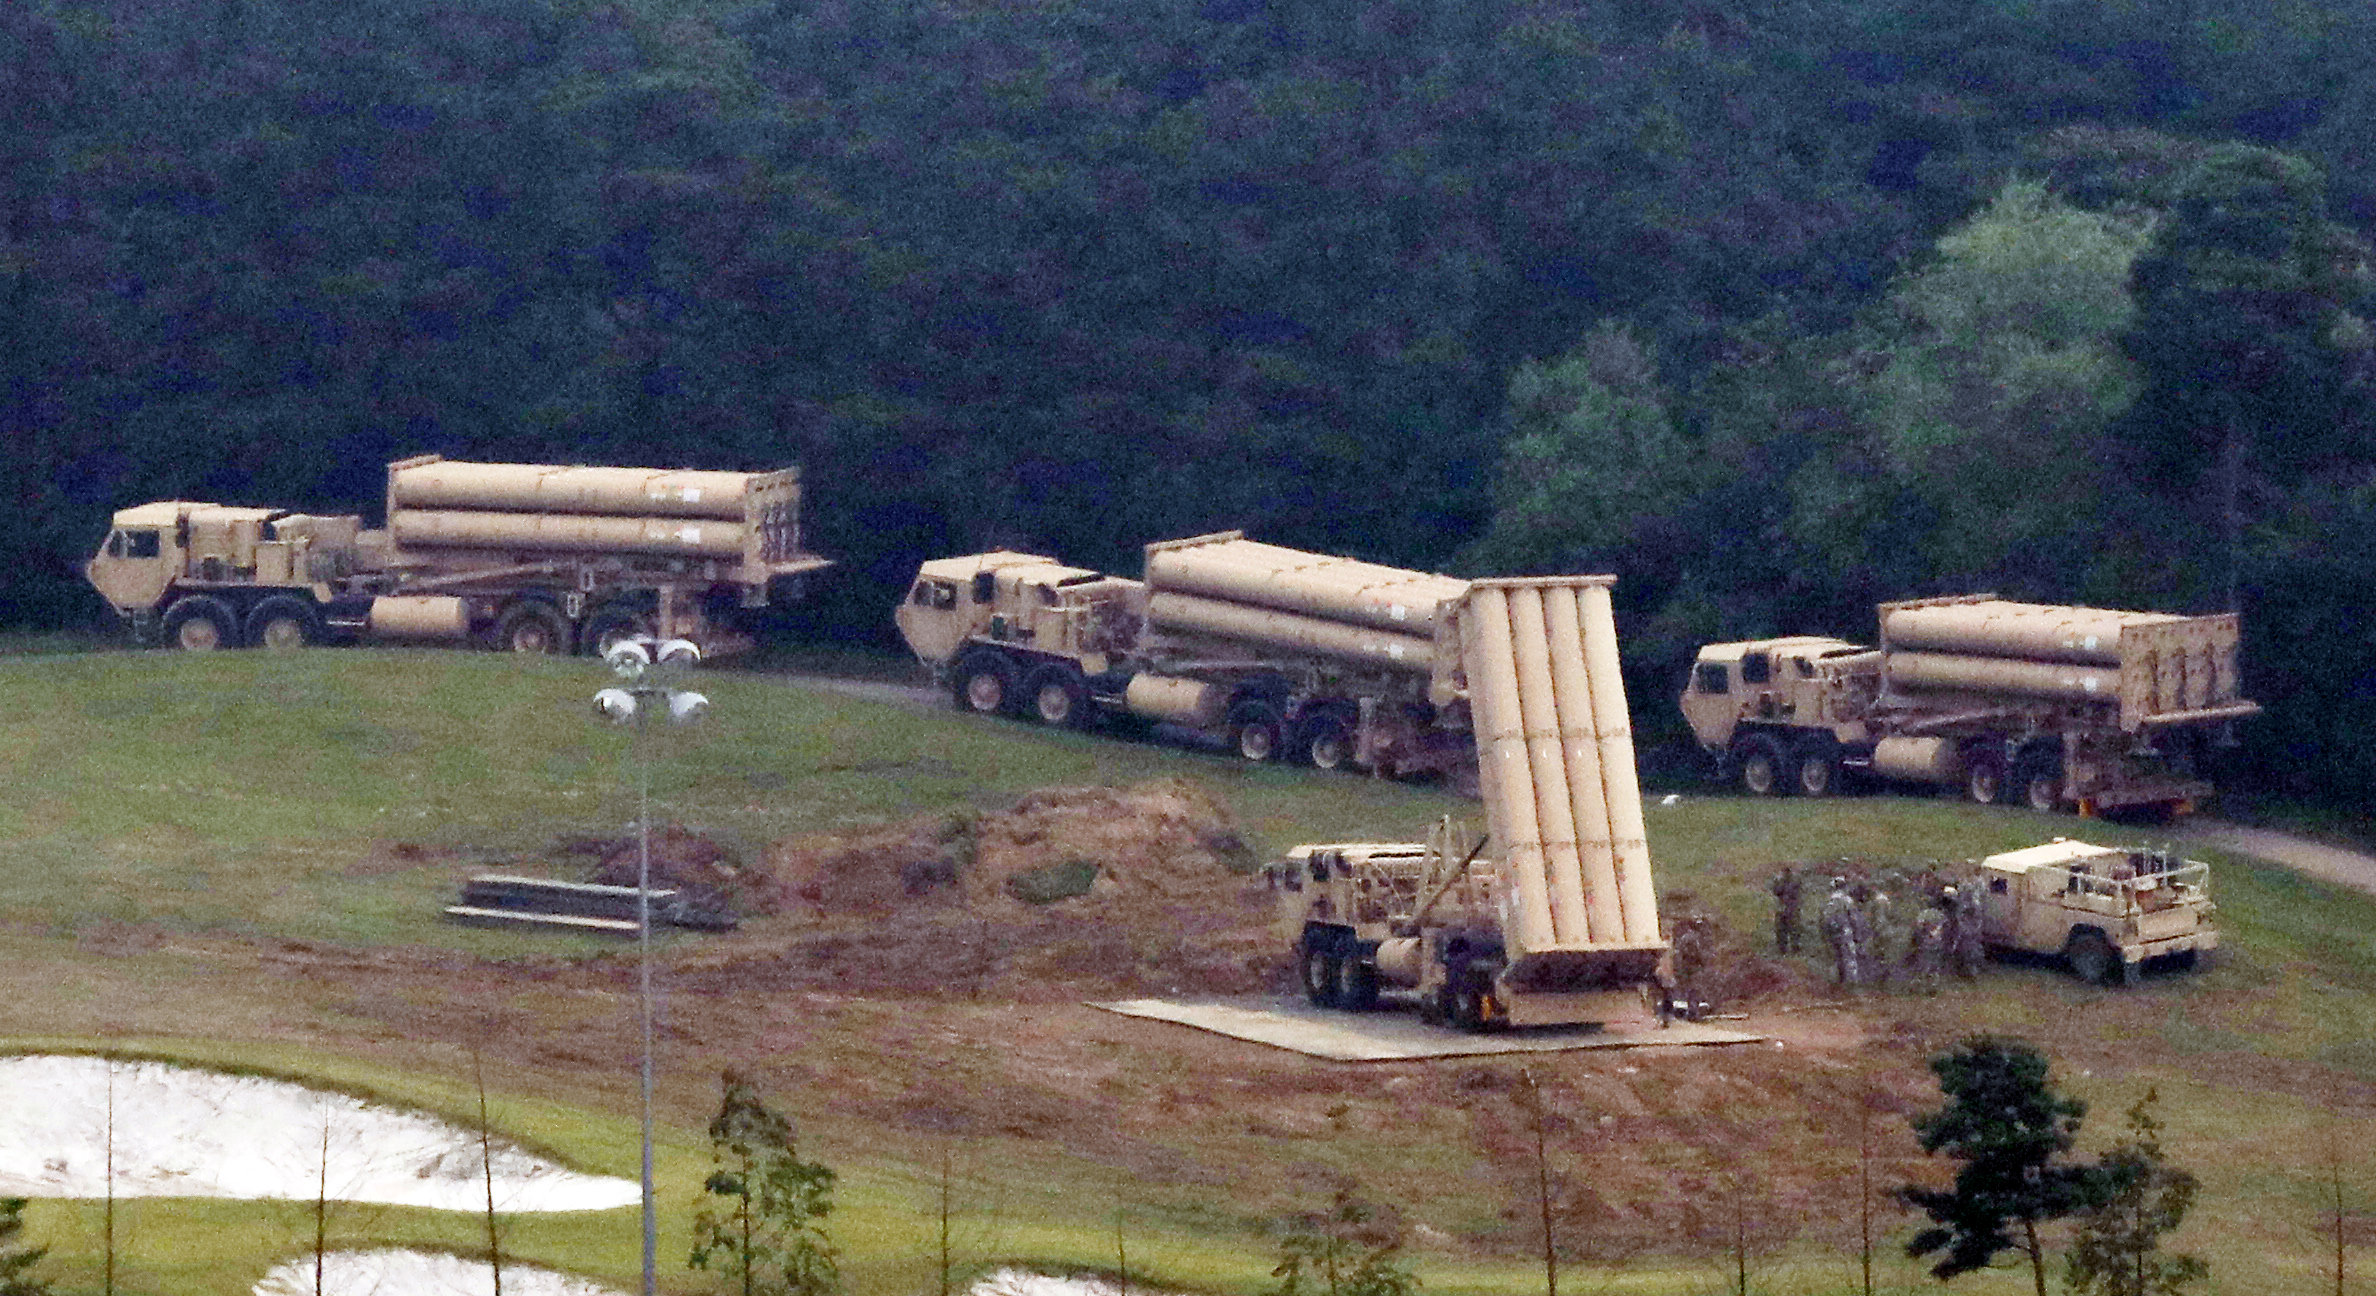 Terminal High Altitude Area Defense (THAAD) interceptors are seen as they arrive at Seongju, South Korea on Sept. 7, 2017. (Lee Jong-hyeon/News1 via REUTERS)